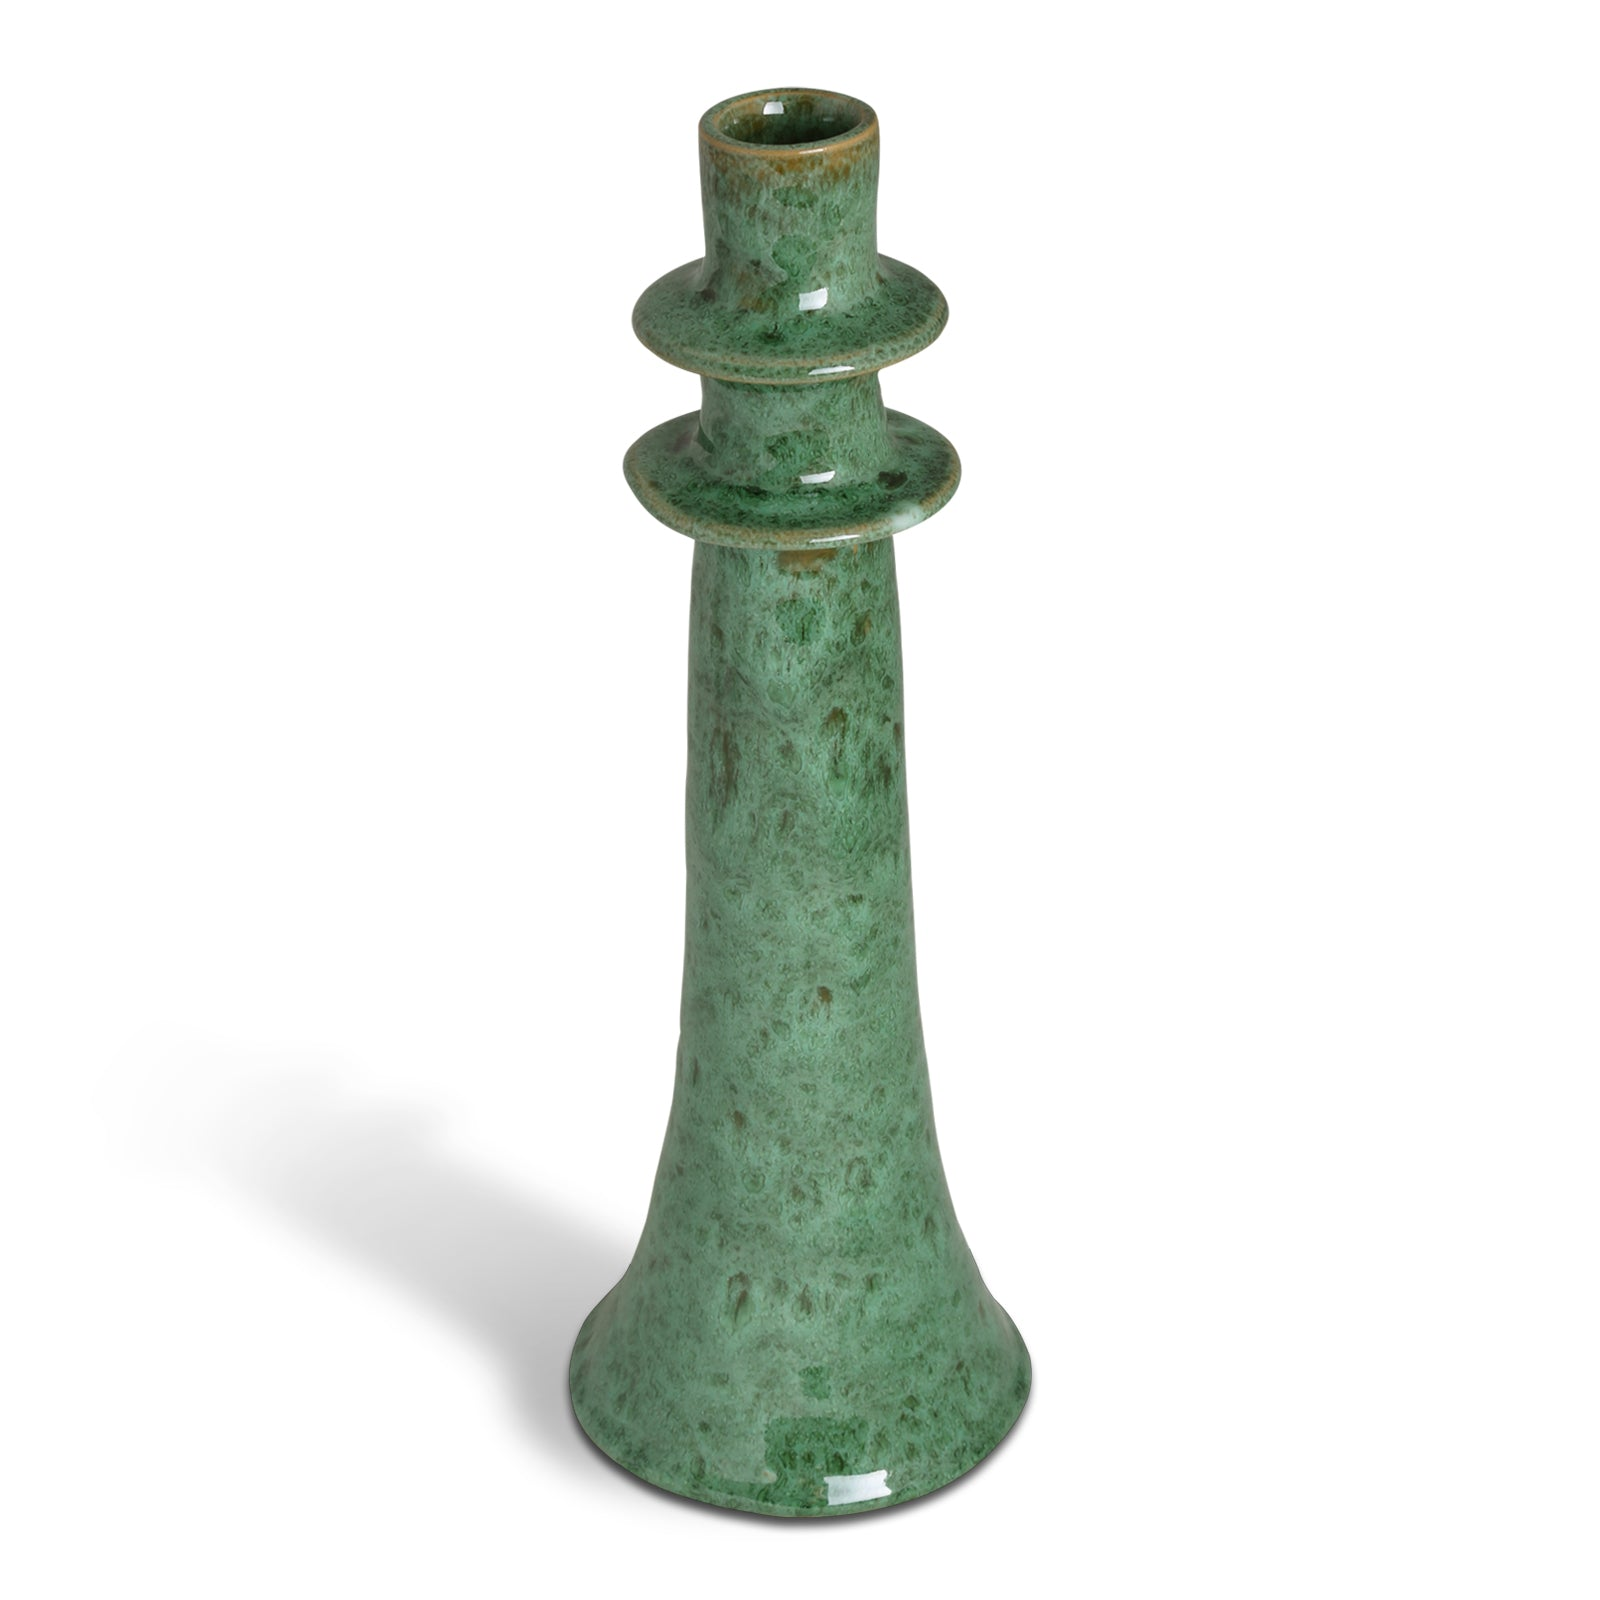 Tall Algae Candlestick